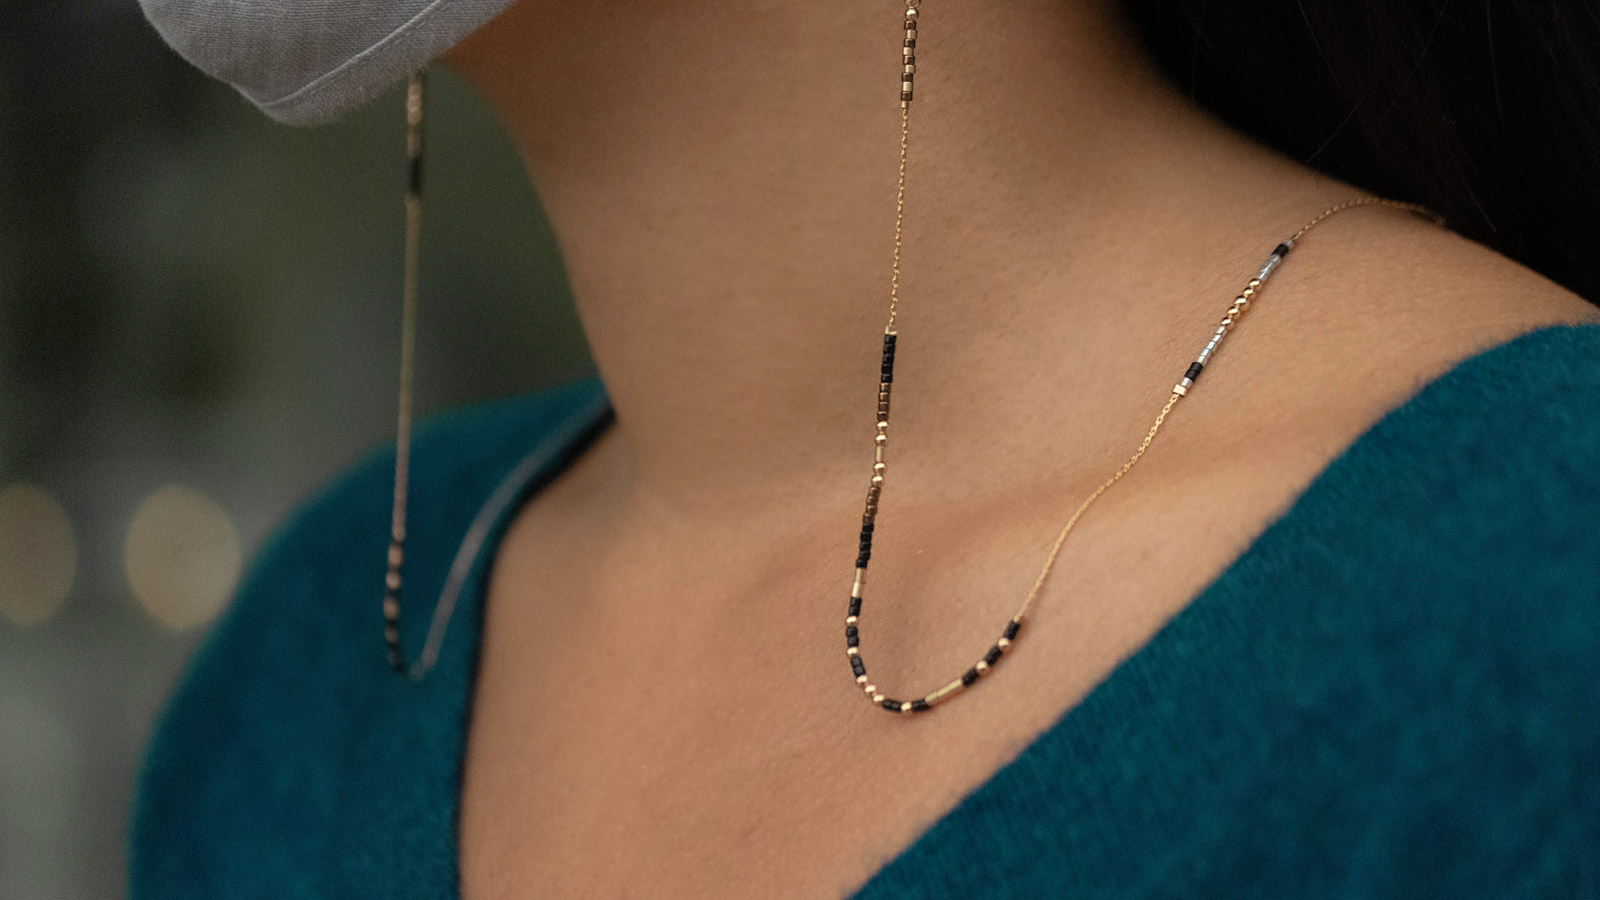 These Locally Made Mask Chains Support Single Mothers While Keeping Your Mask Safe